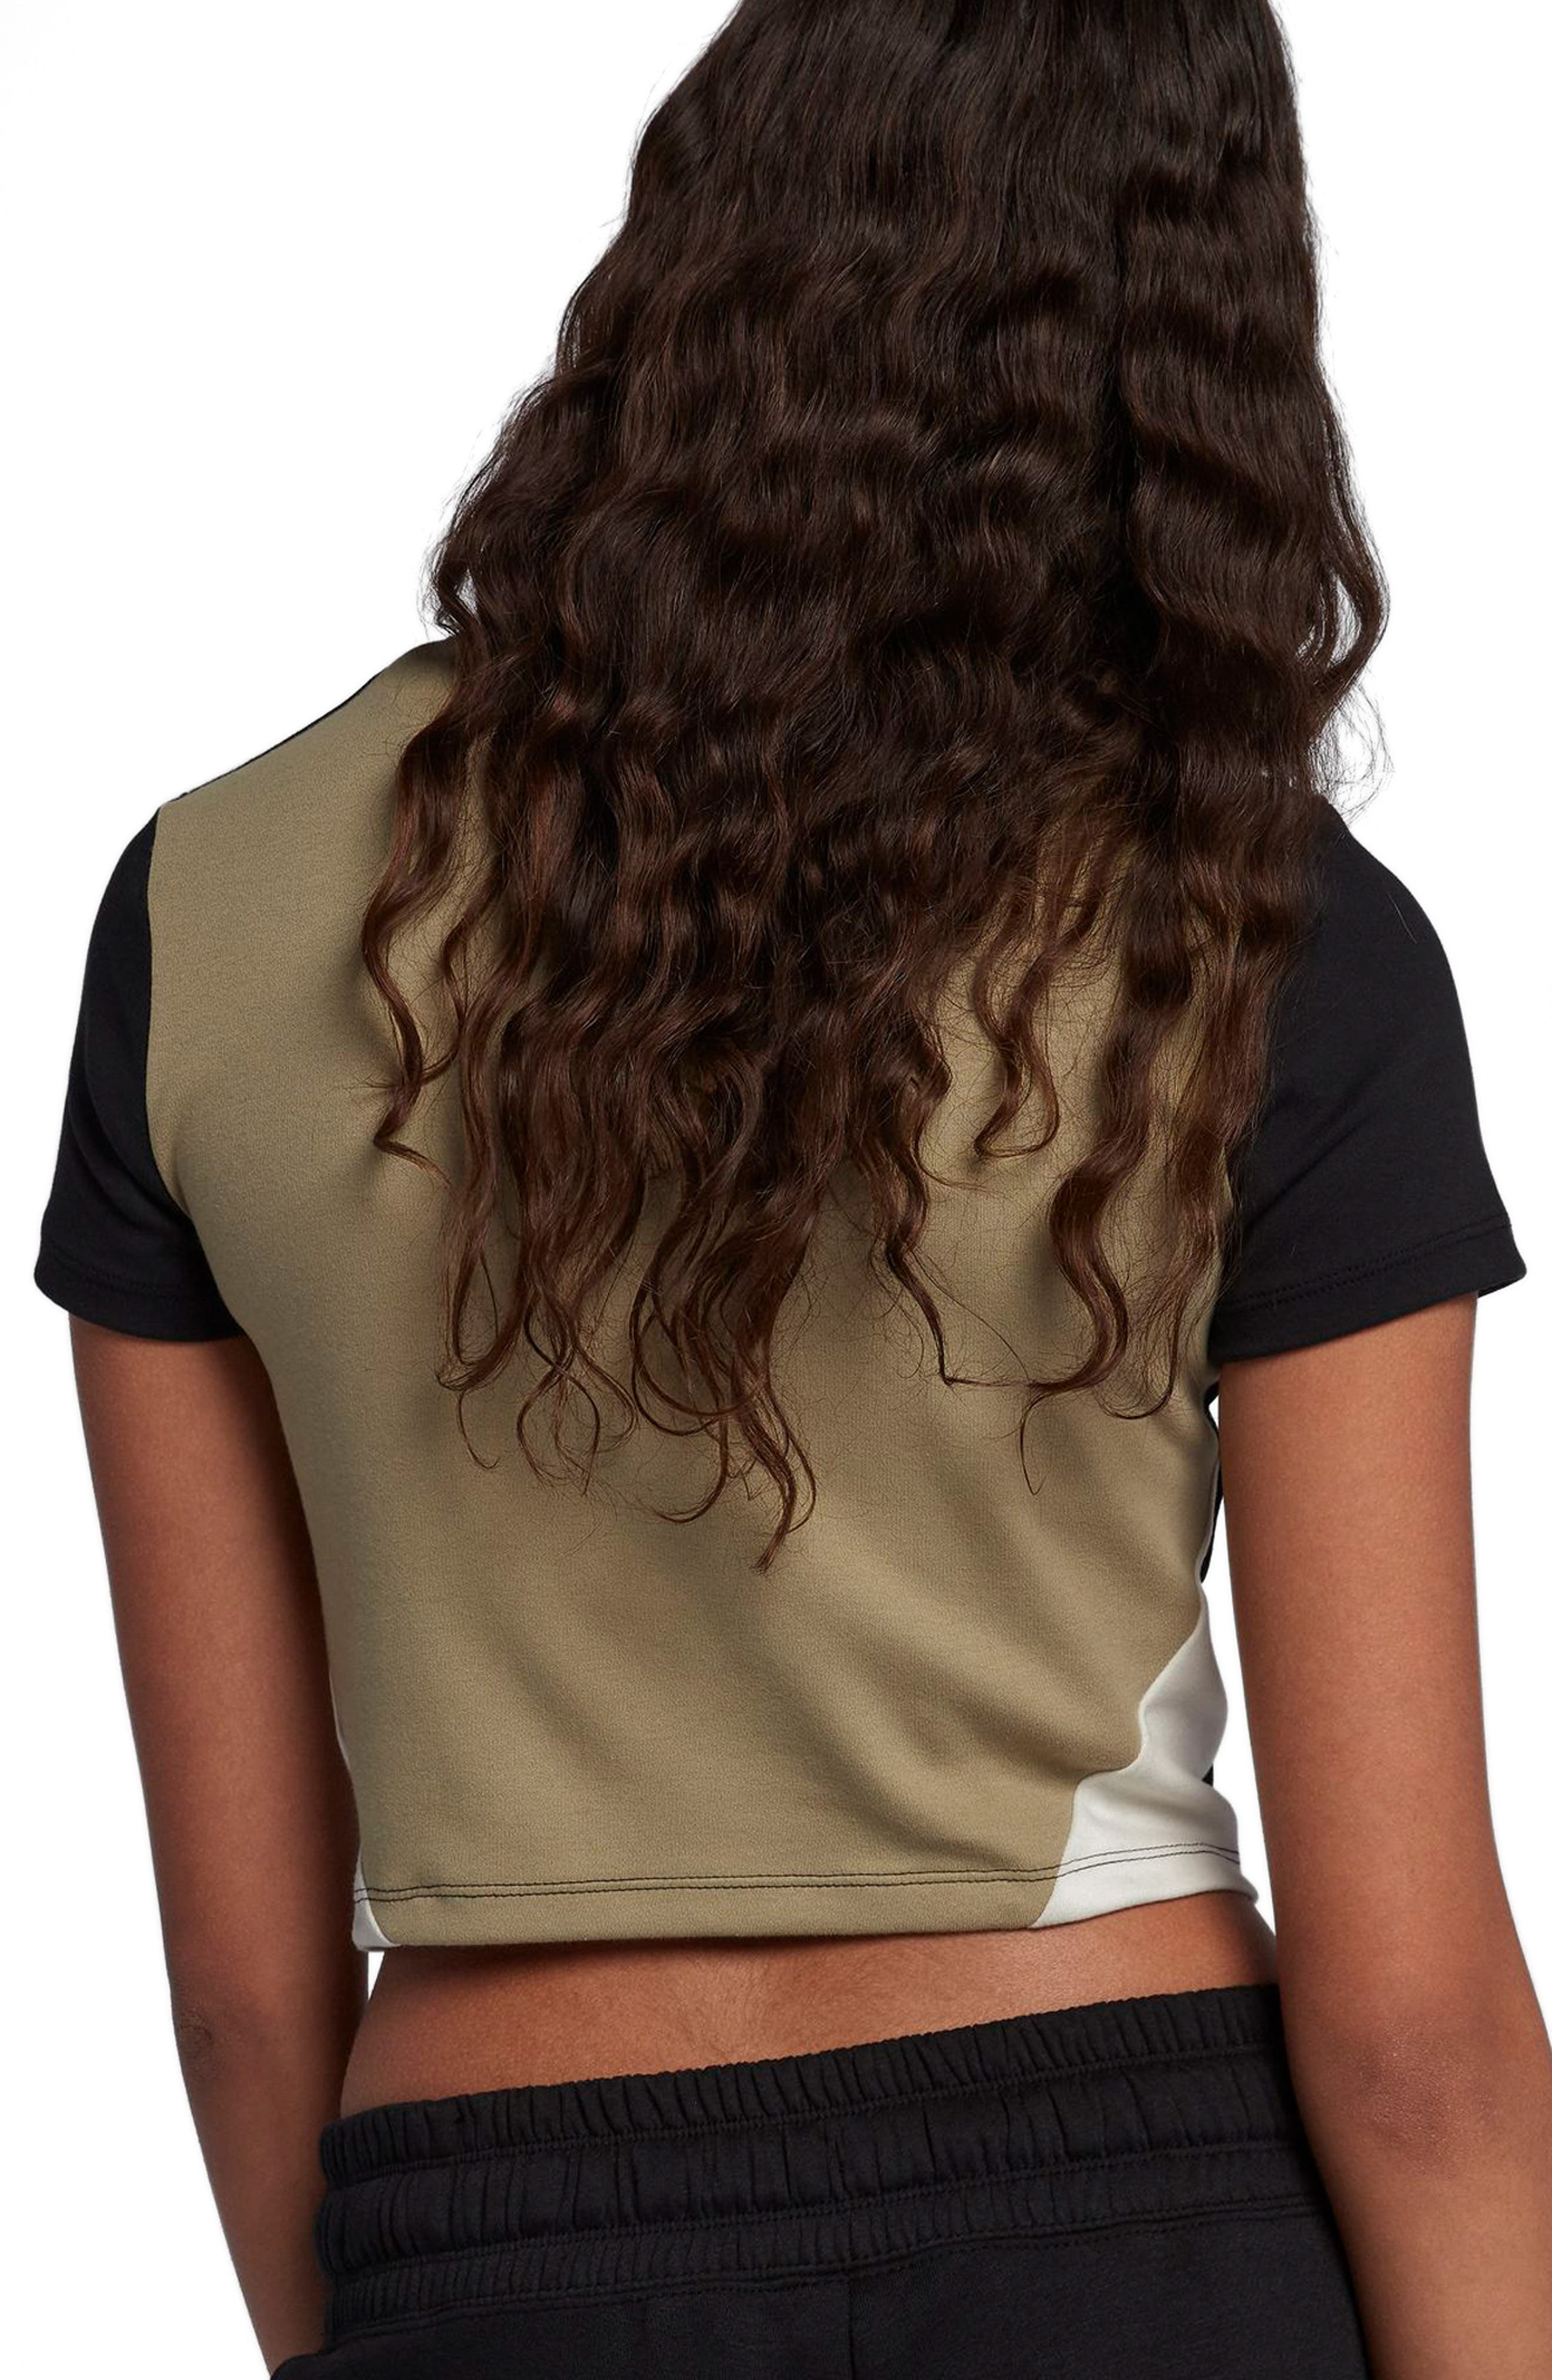 Sportswear Stretch Jersey Crop Top,                             Alternate thumbnail 2, color,                             Black/Neutral Olive/Barely Vol